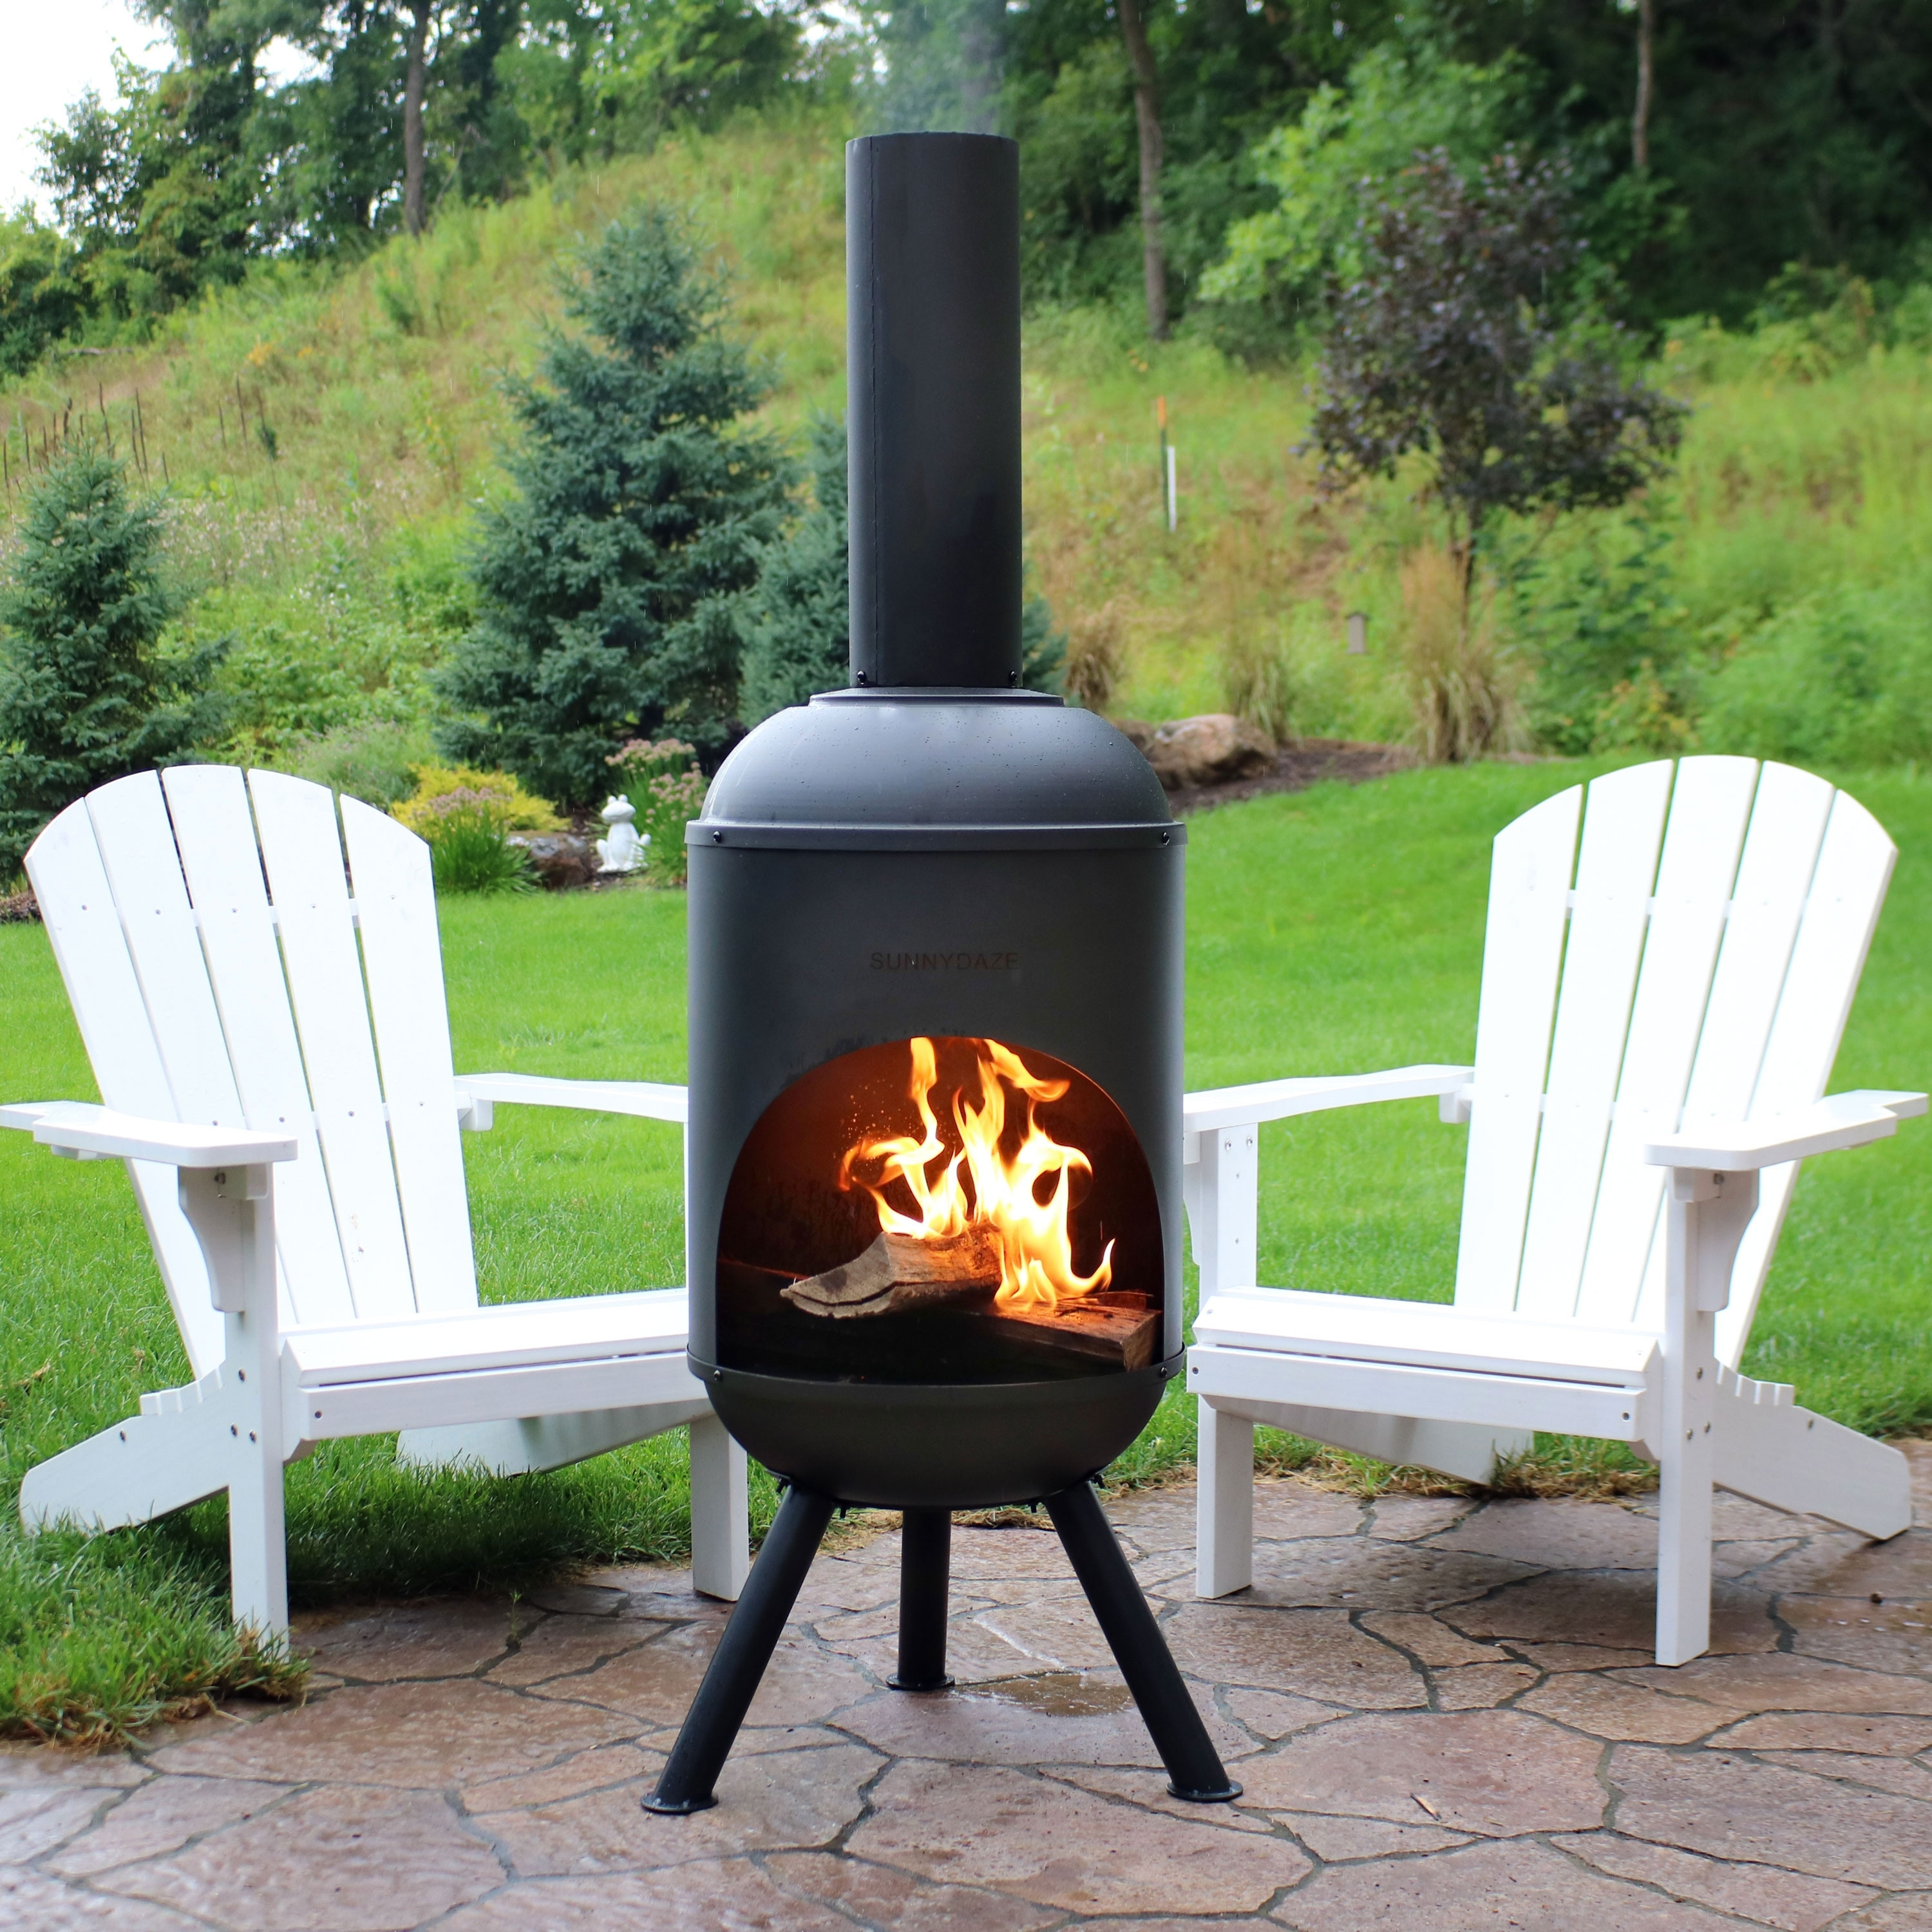 Shop sunnydaze black steel outdoor wood burning backyard chiminea fire pit 5 foot free shipping today overstock com 21853940